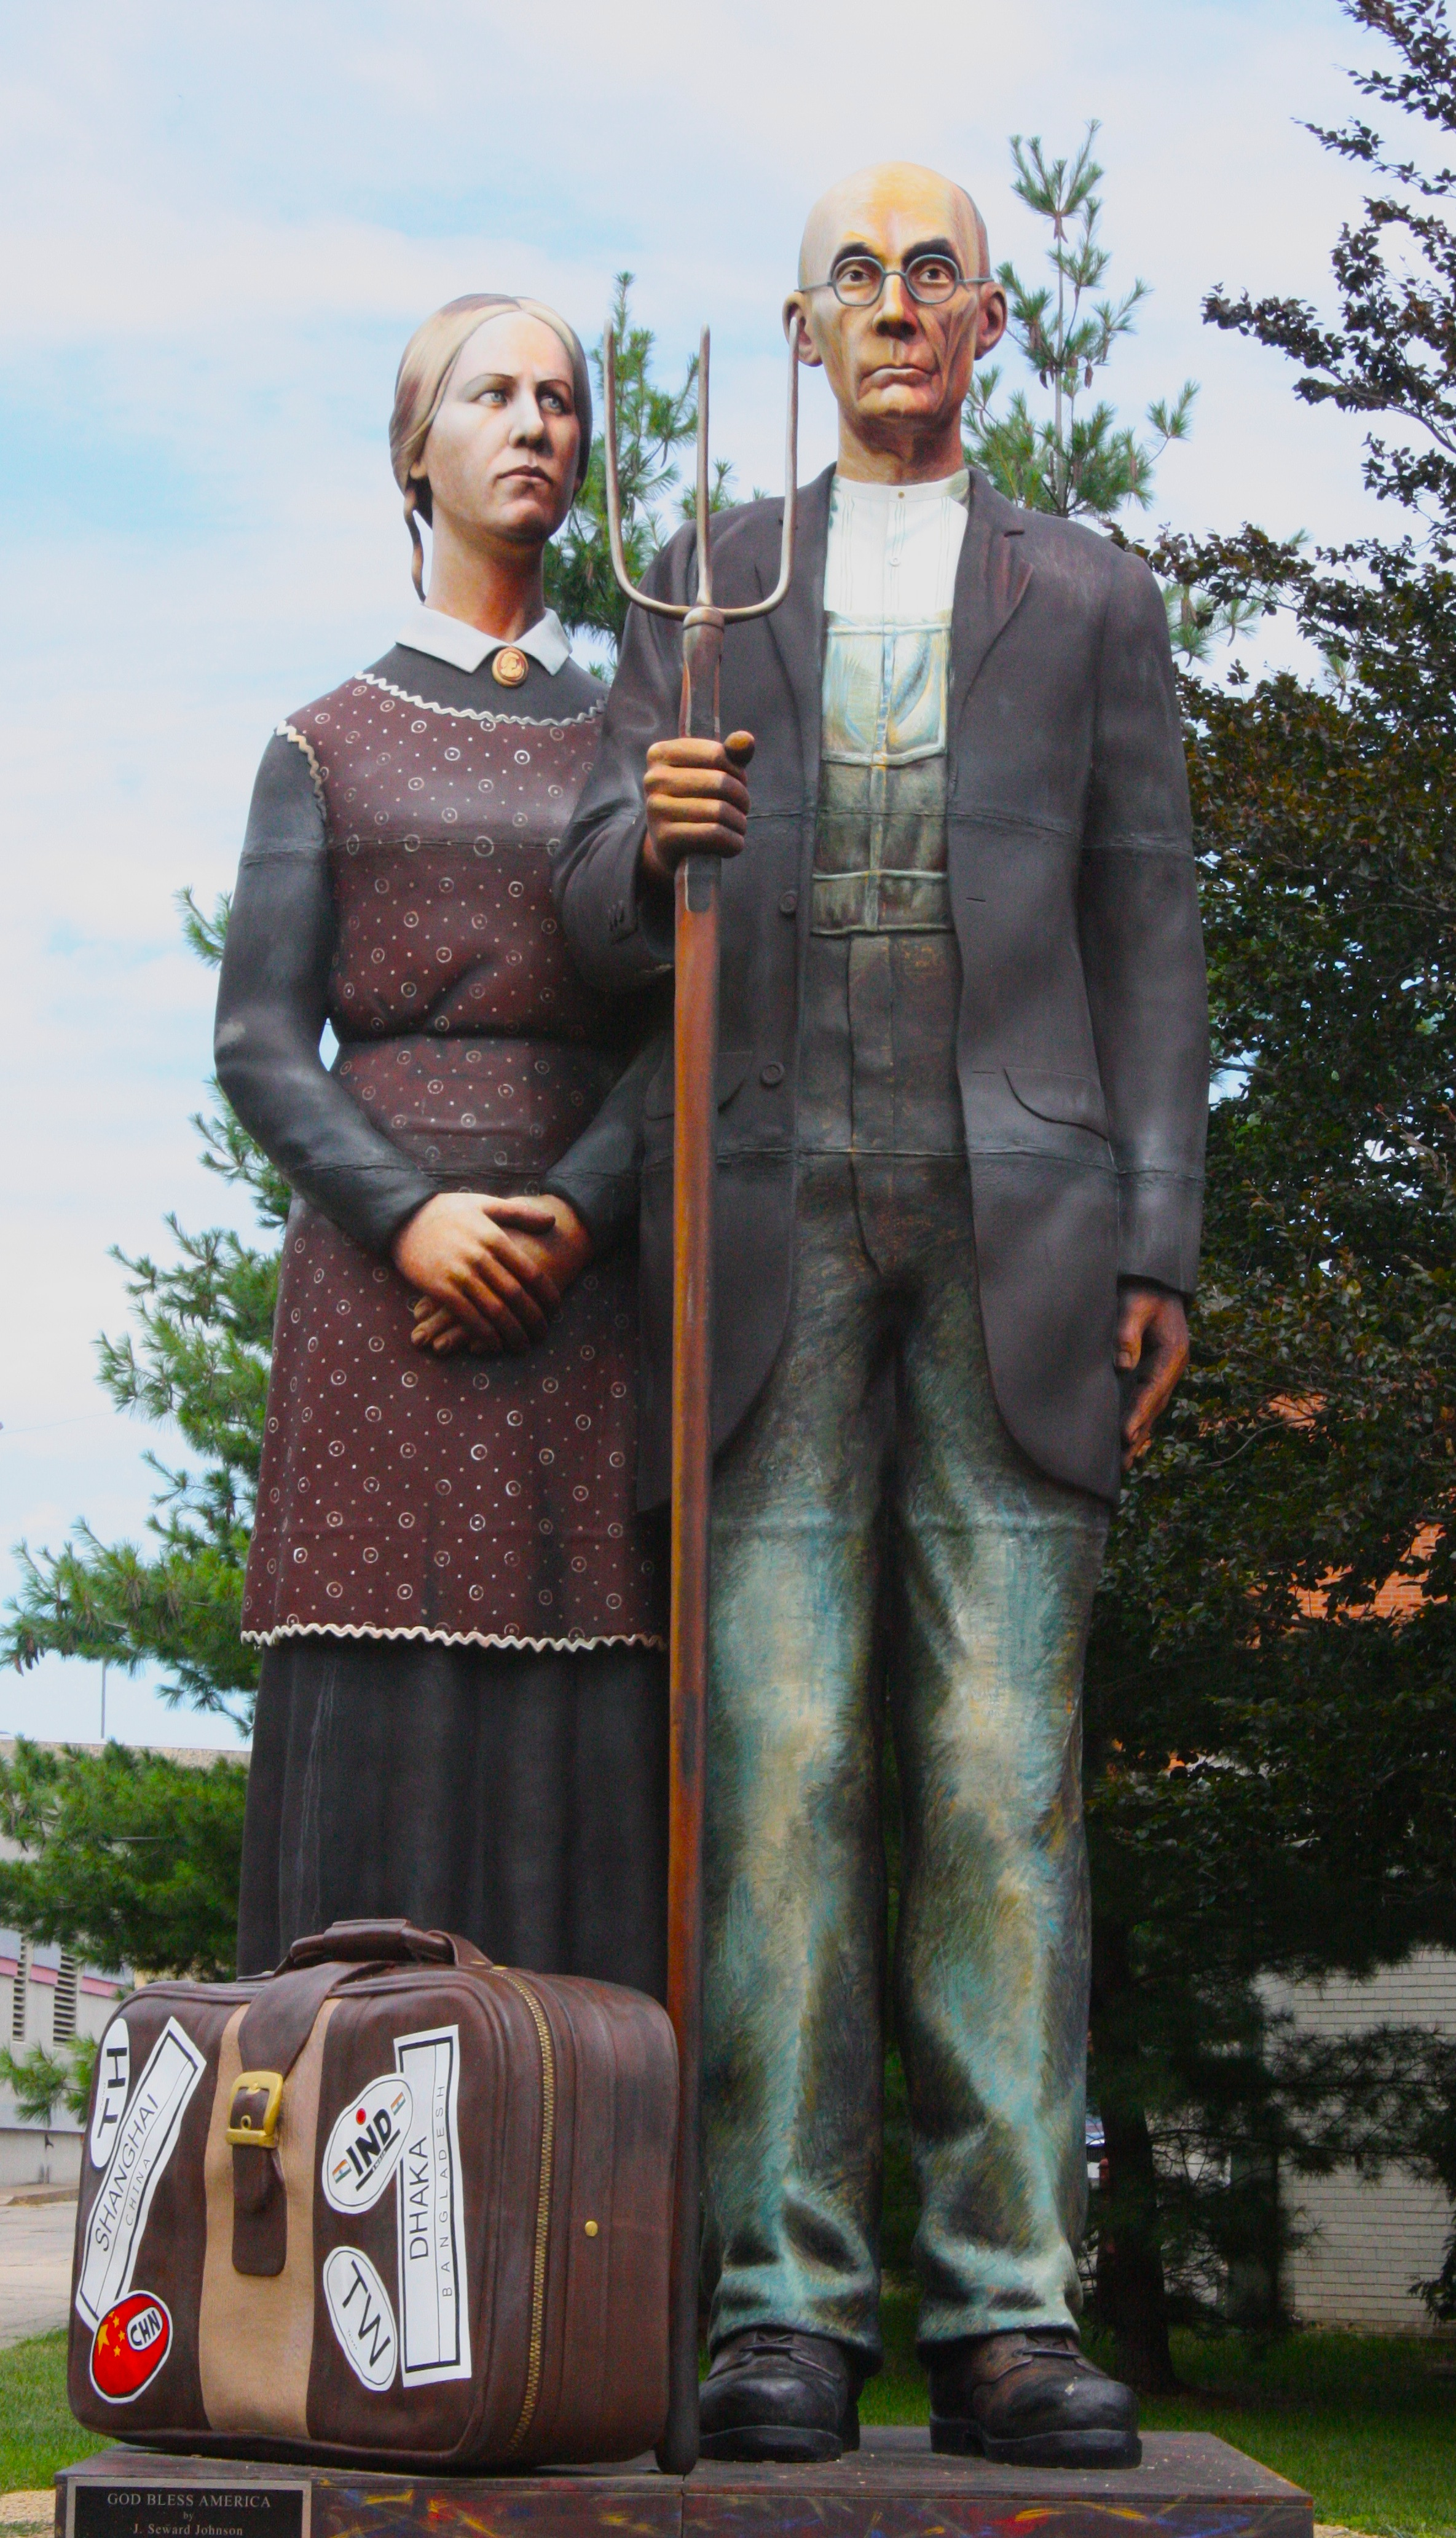 The Sculpture Of Iconic American Gothic Painting